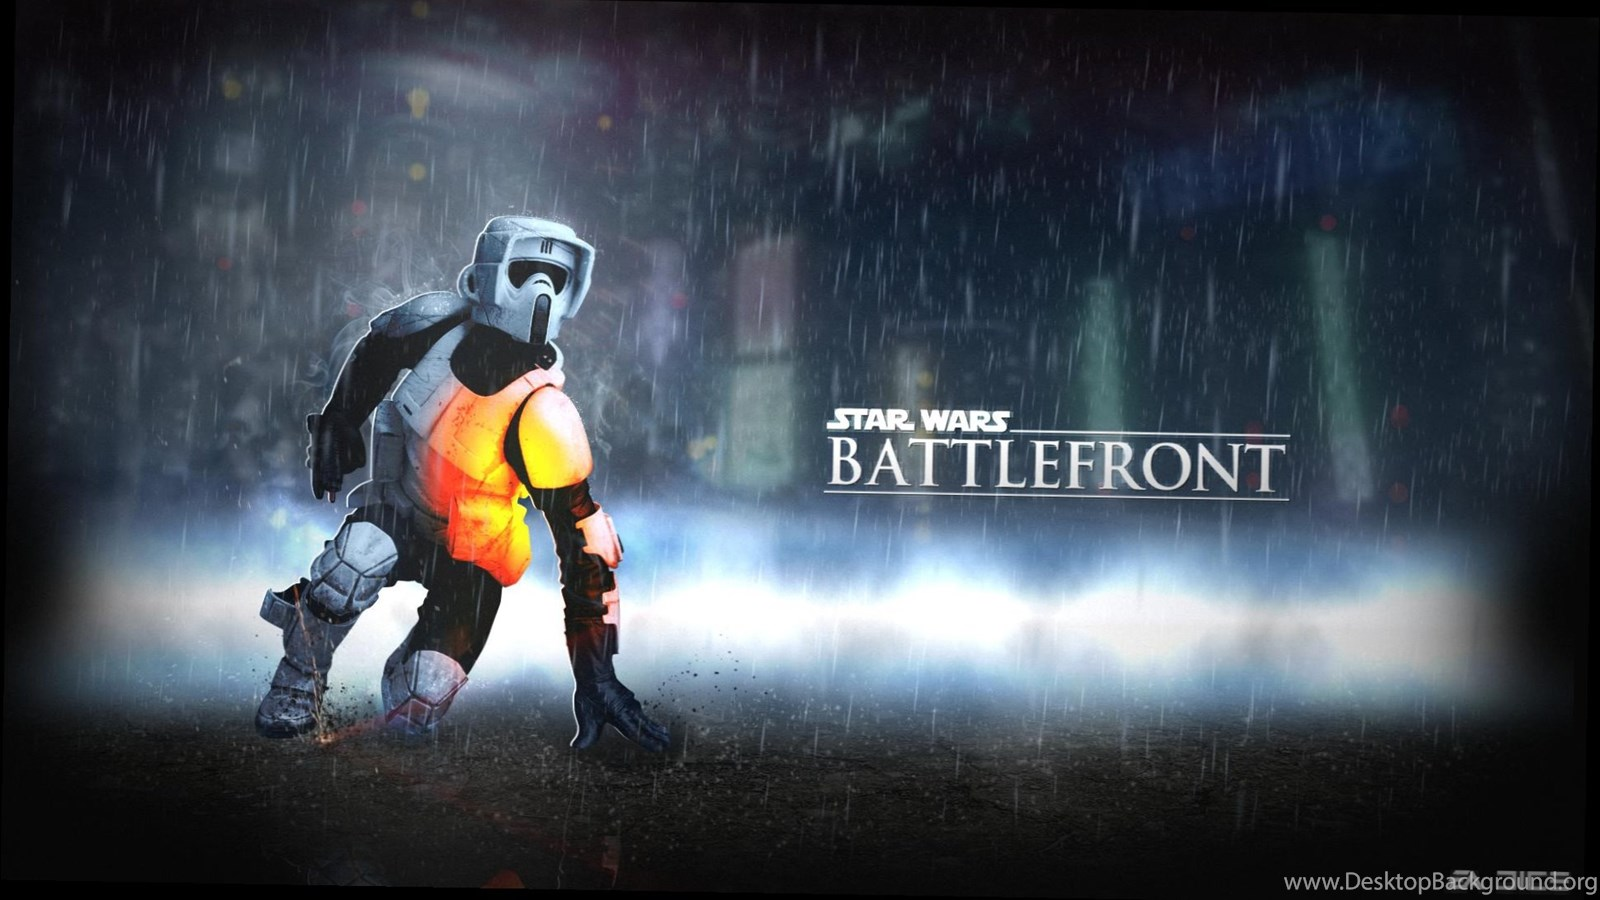 Star Wars Battlefront 2 Wallpapers Desktop Background